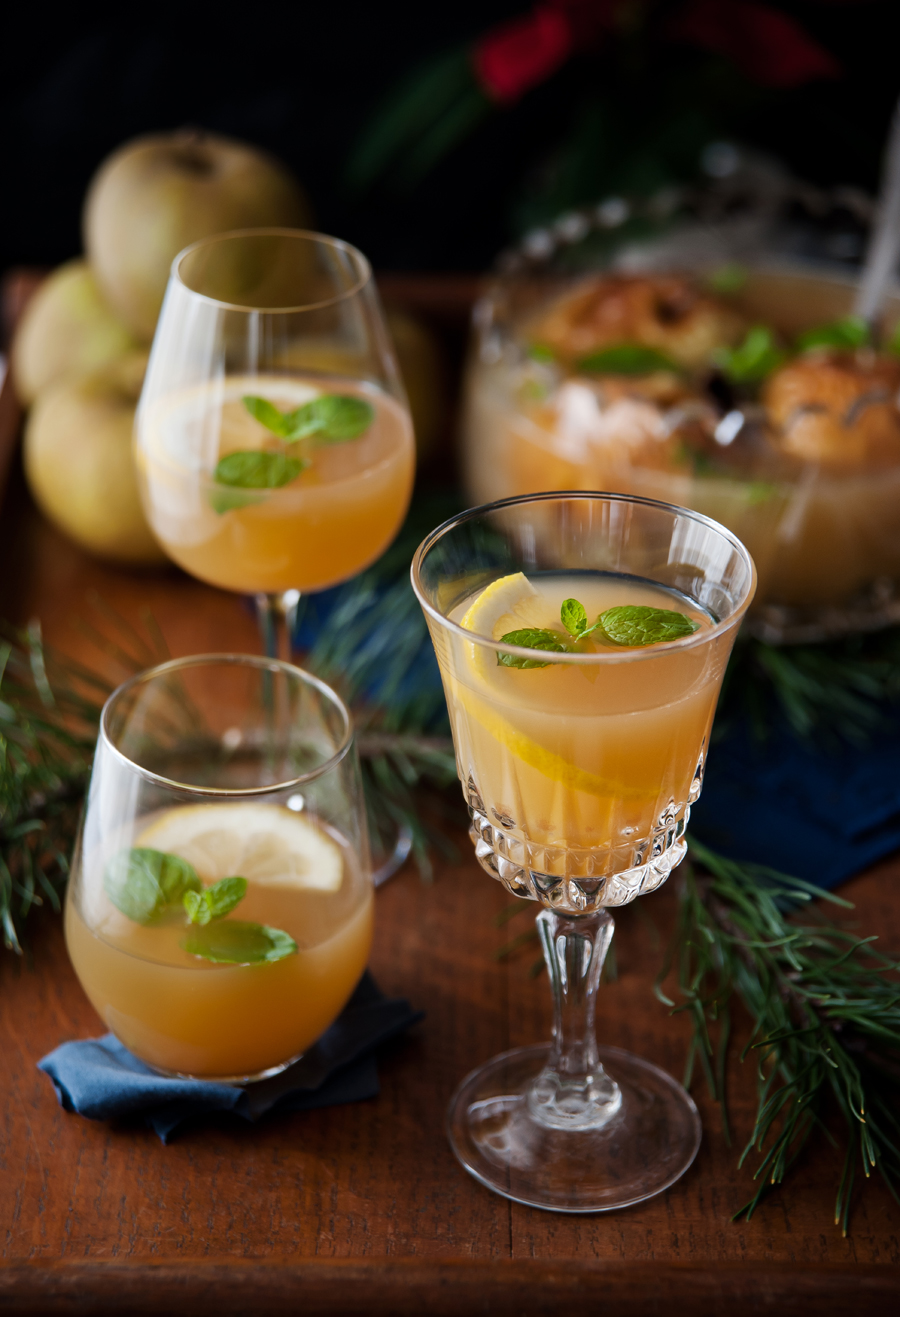 Christmas apple punch with herbs and spices that help digestion